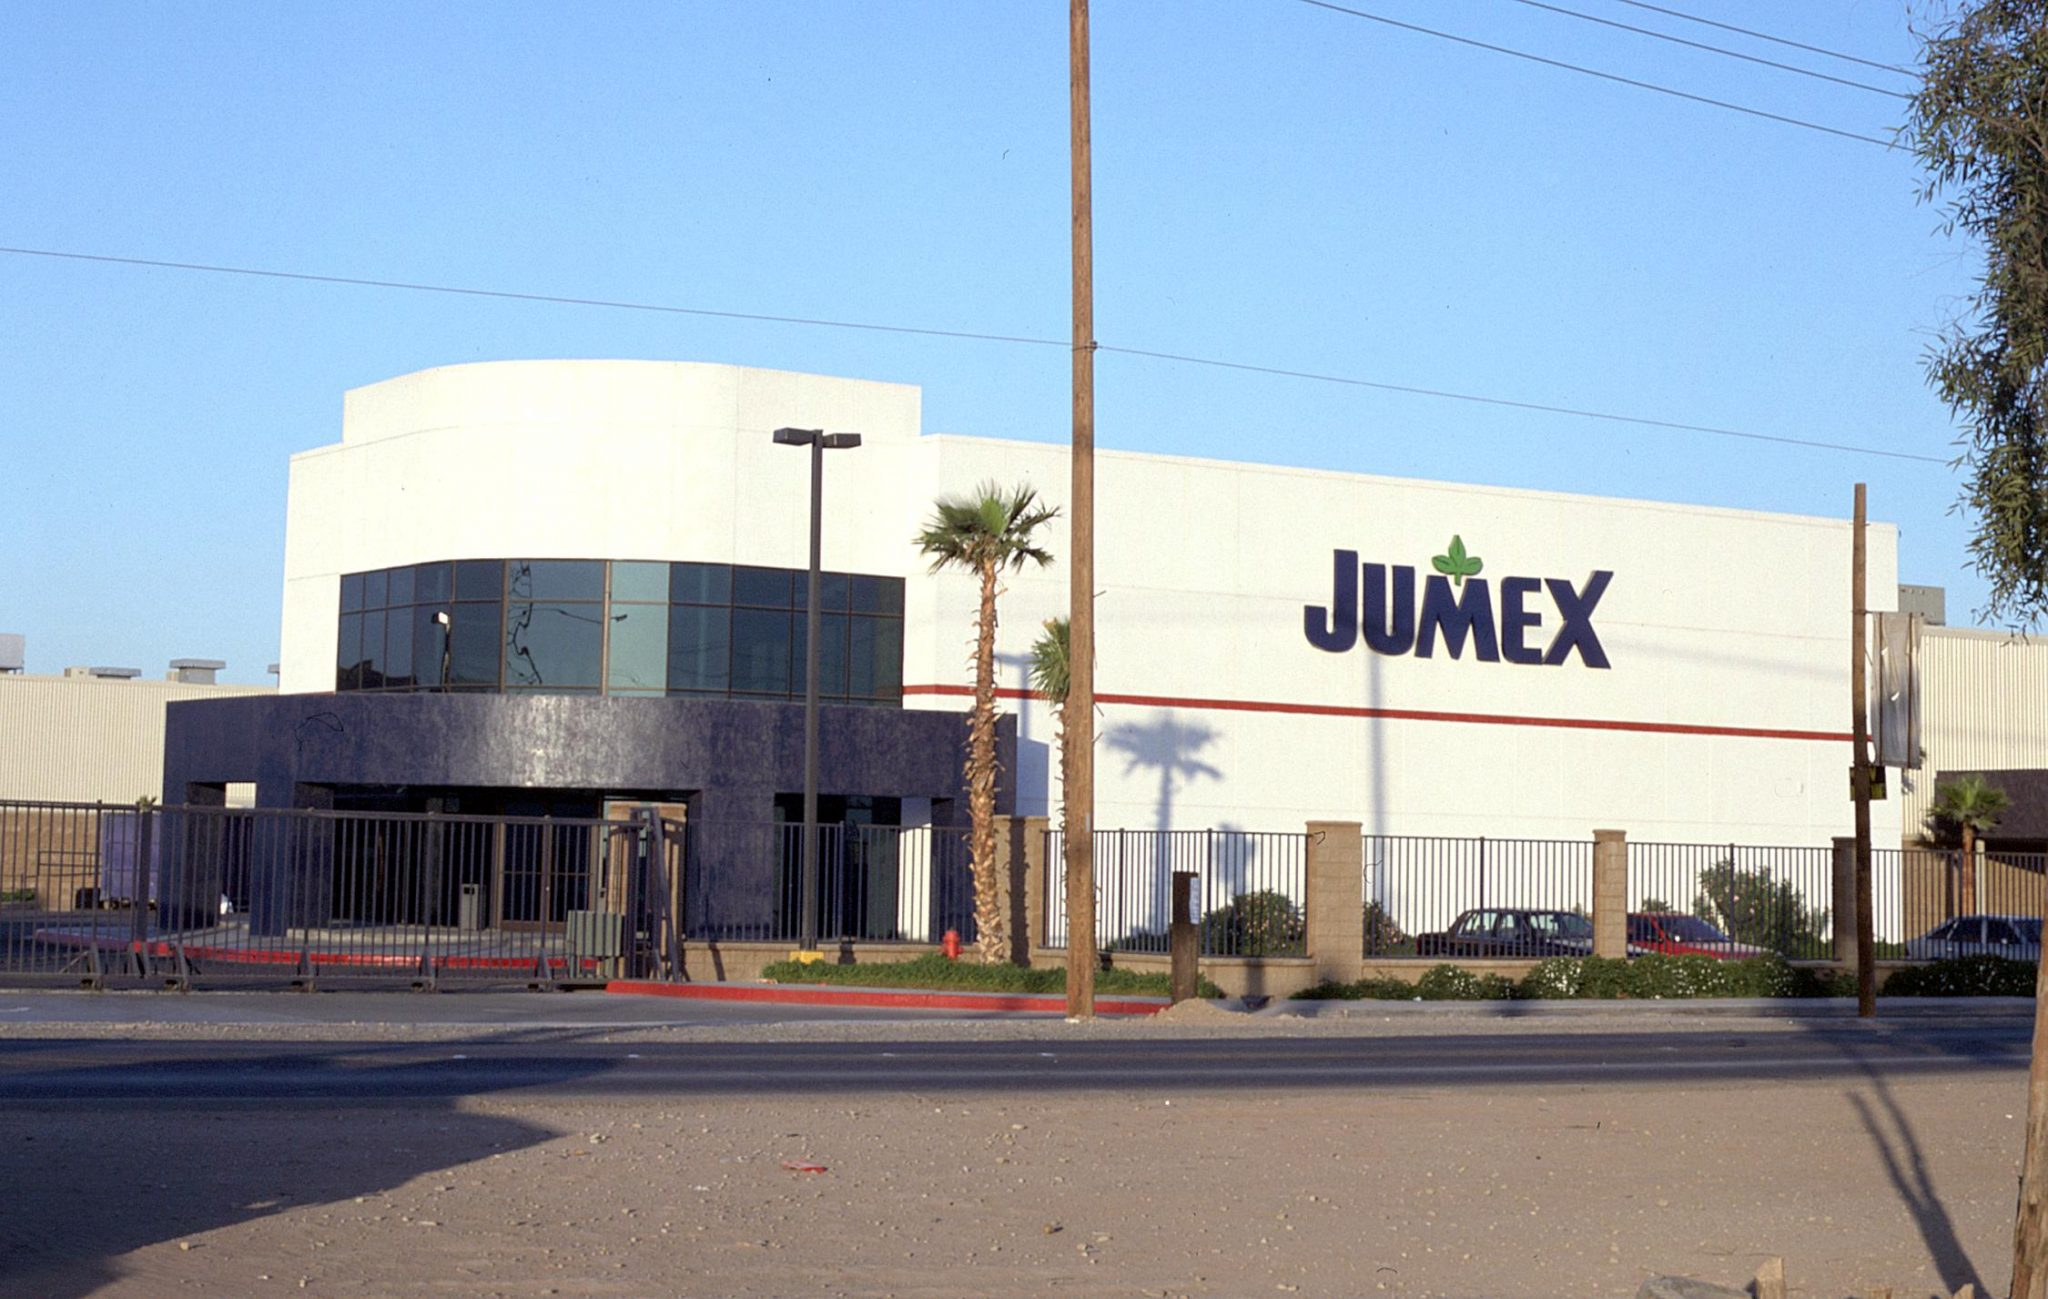 Eye level shot of JUMEX industrial facility in Tijuana, Baja California